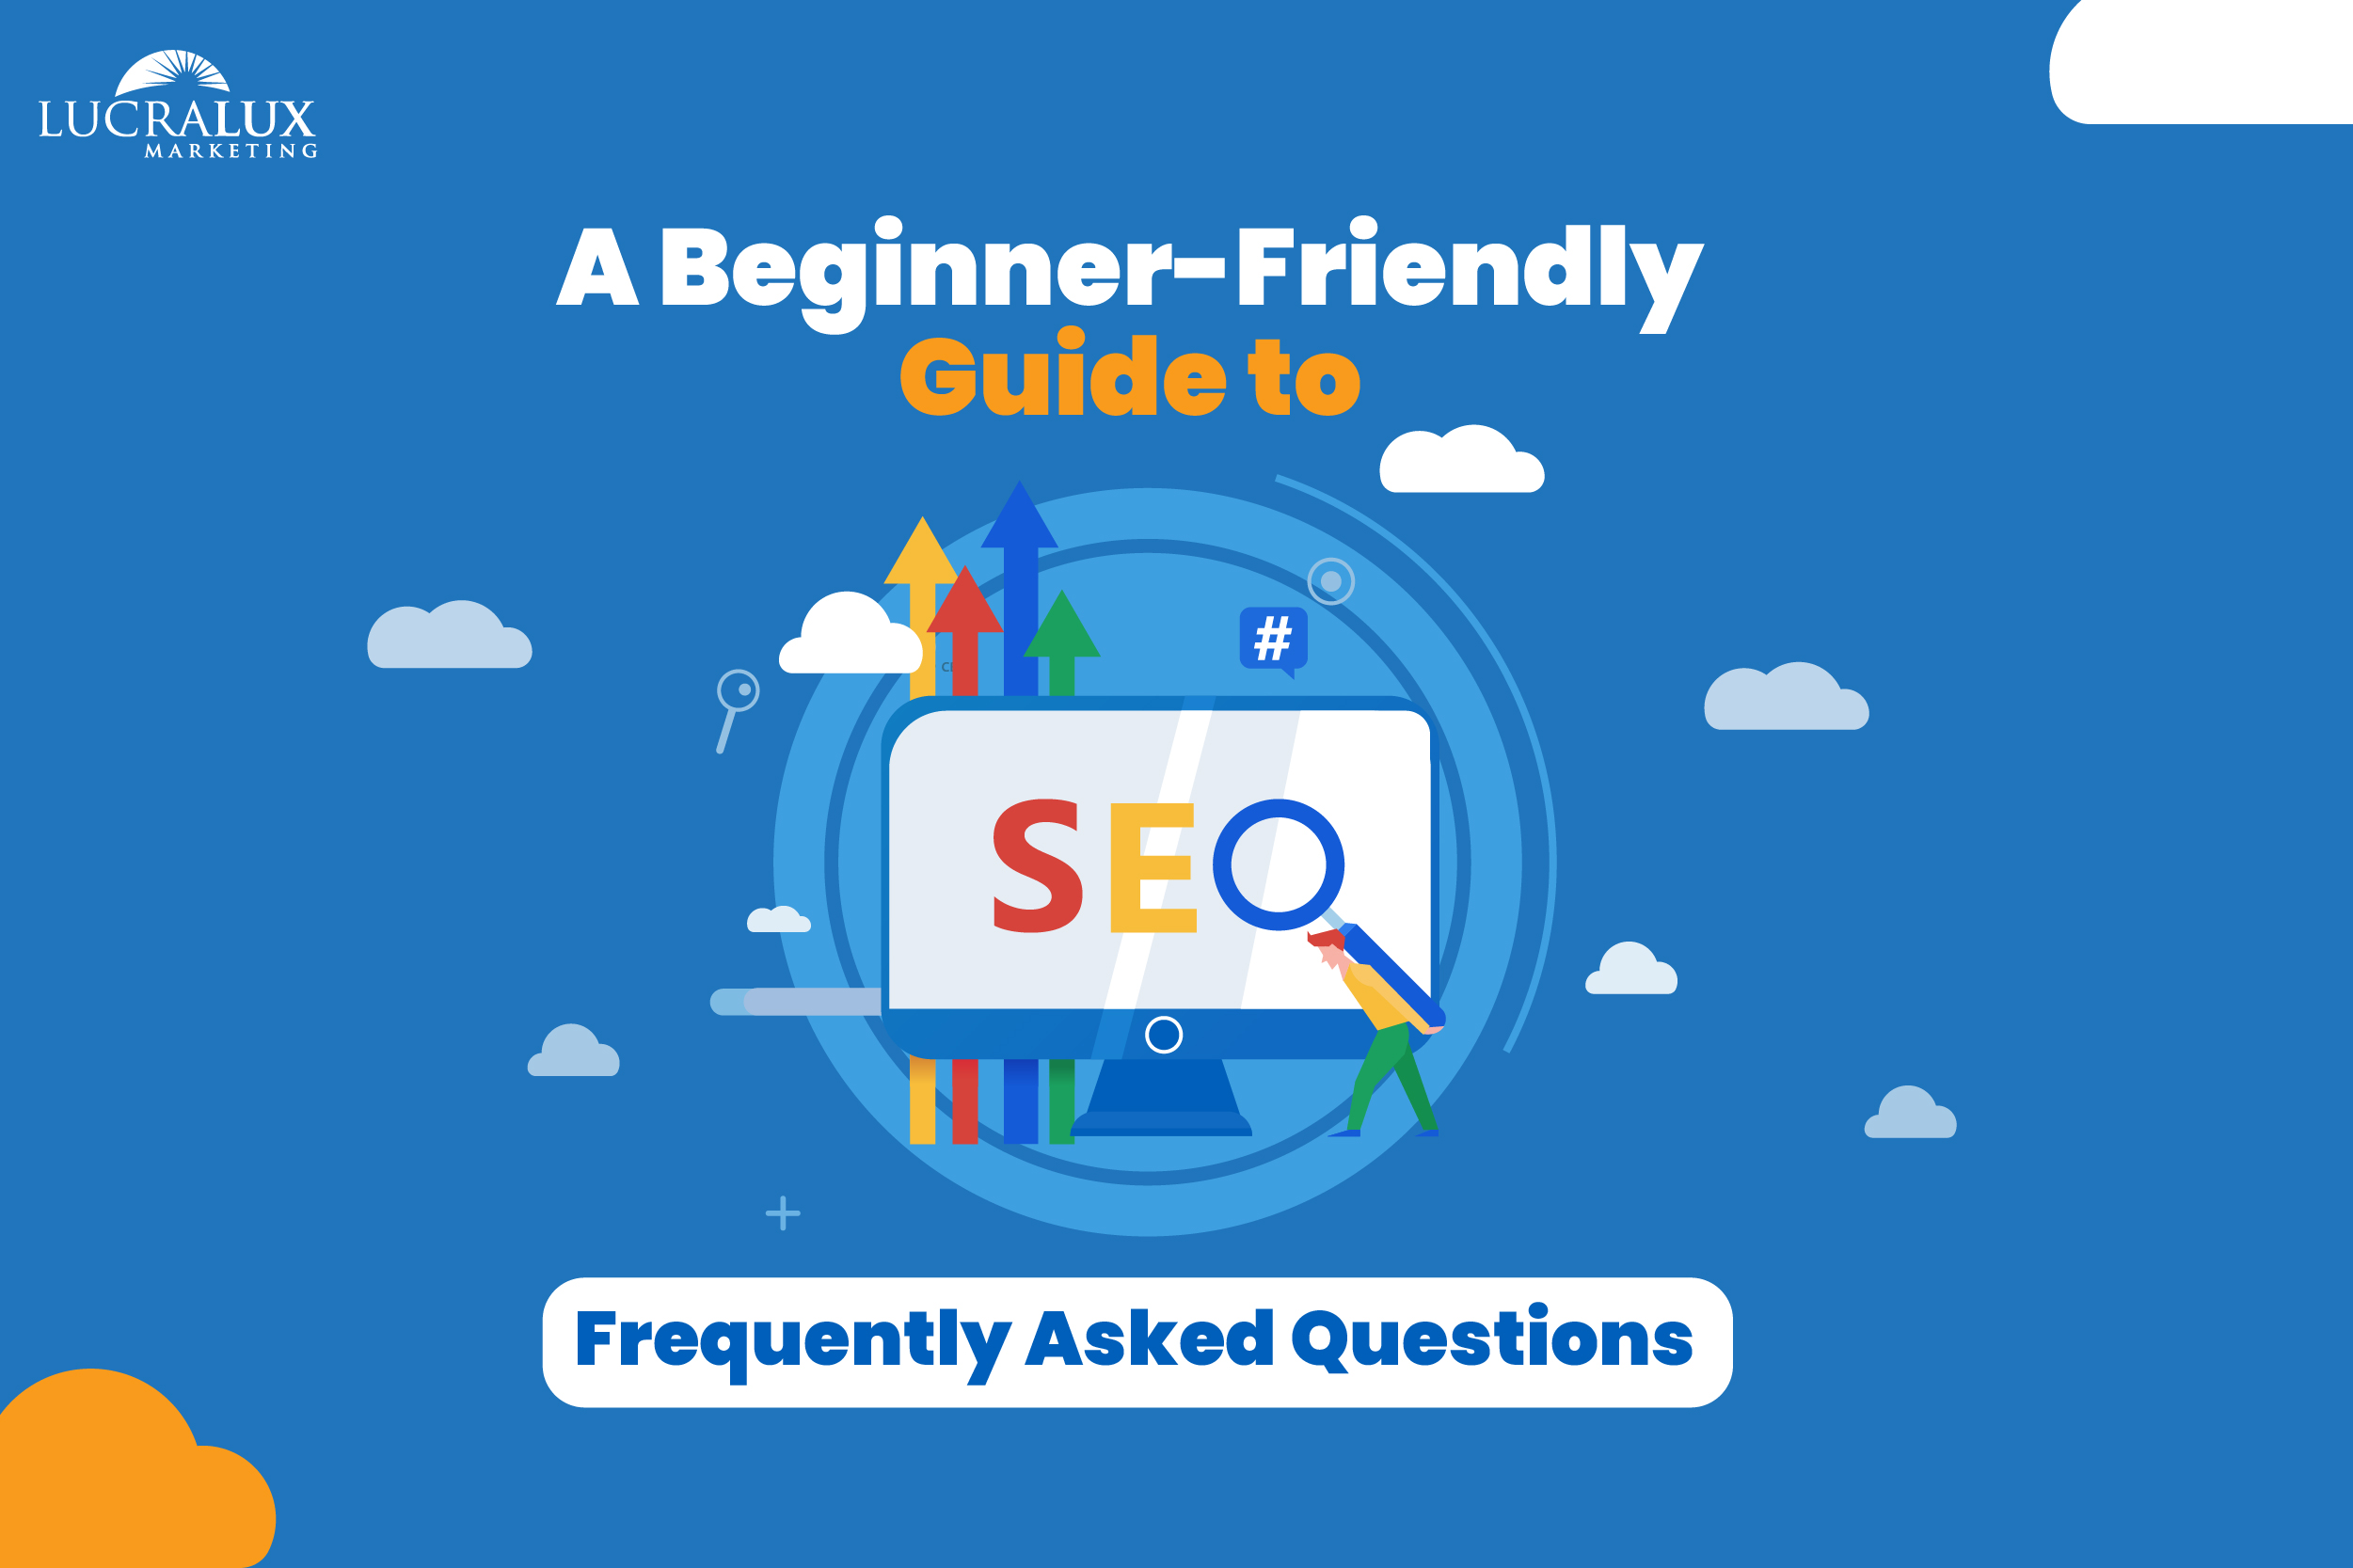 Frequently asked questions about Search Engine Optimisation (SEO)